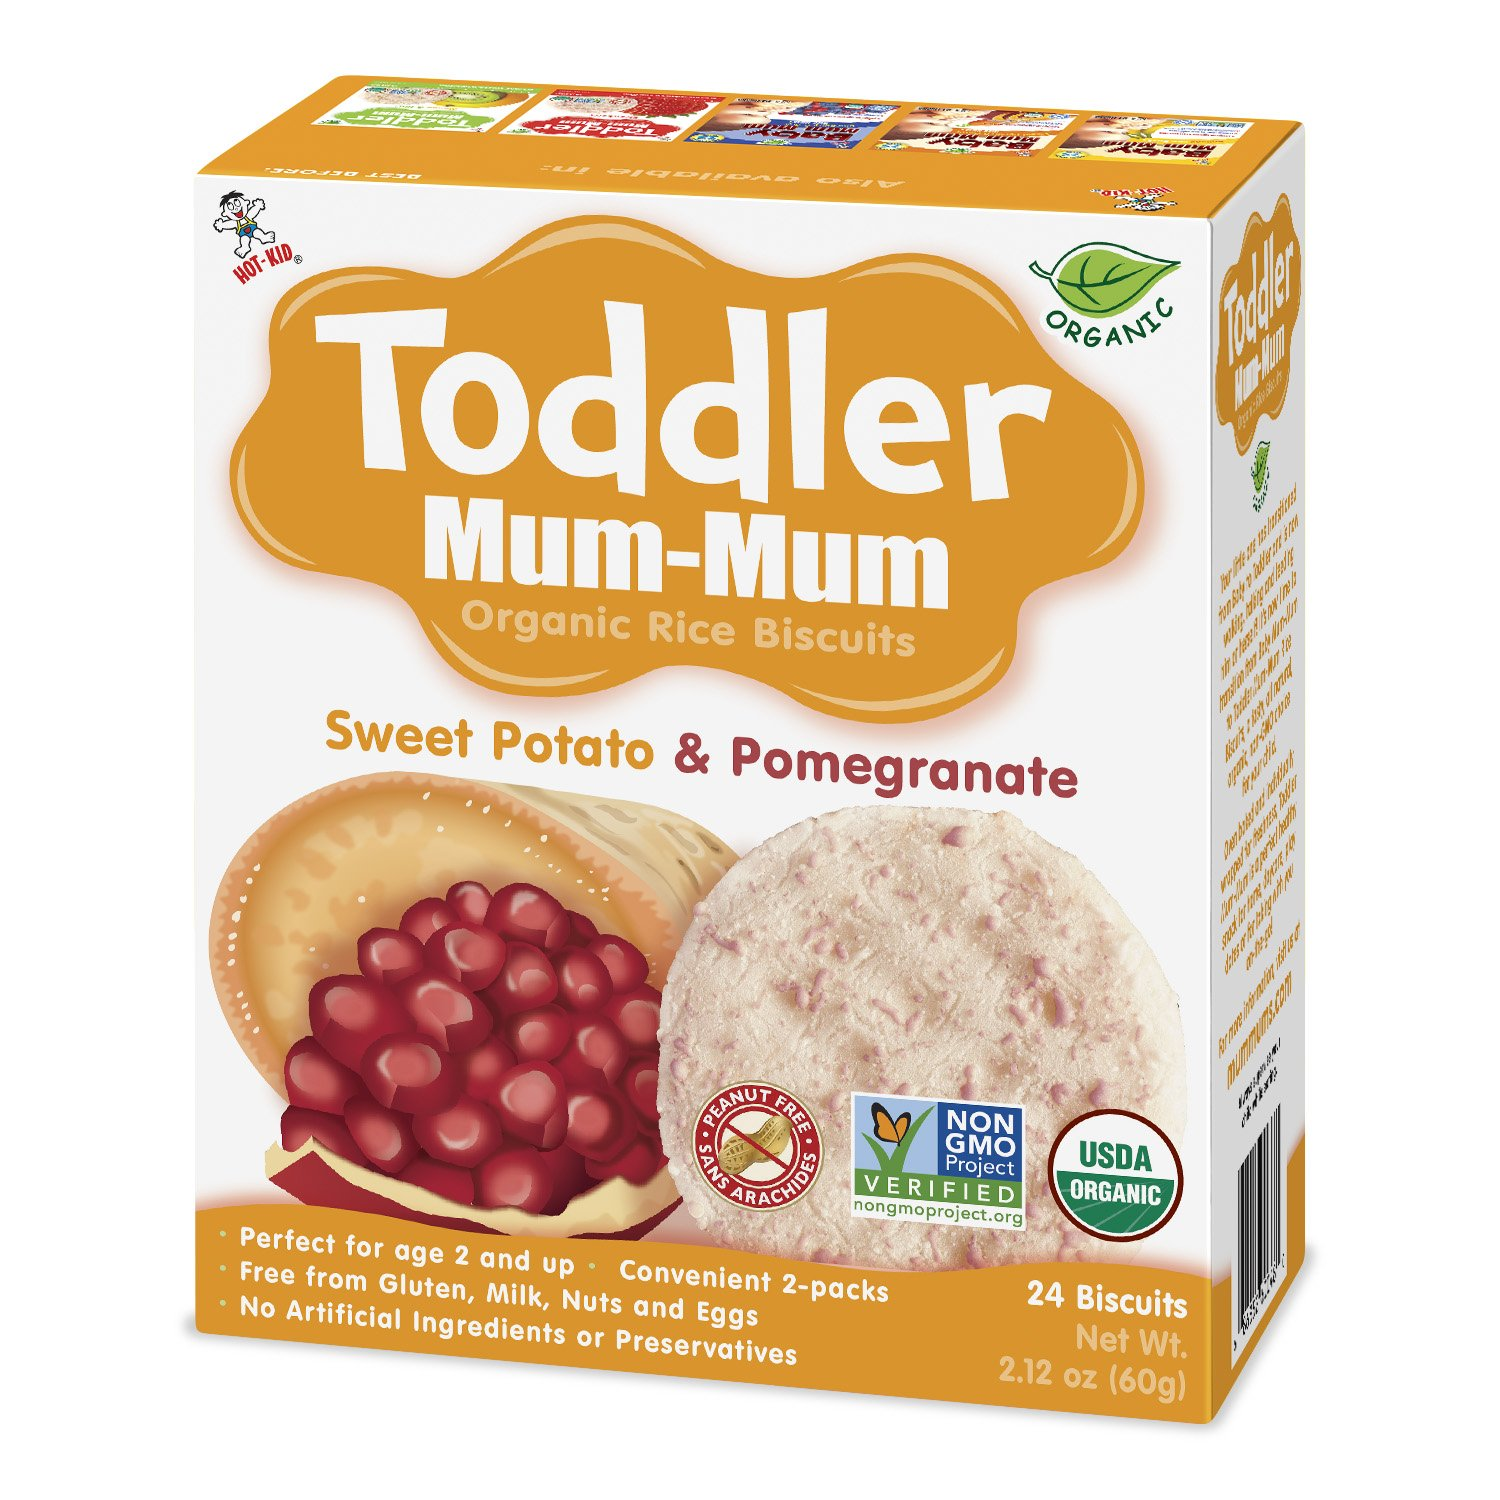 Toddler Mum-Mum Organic Sweet Potato & Pomegranate, 6-Count Want-Want